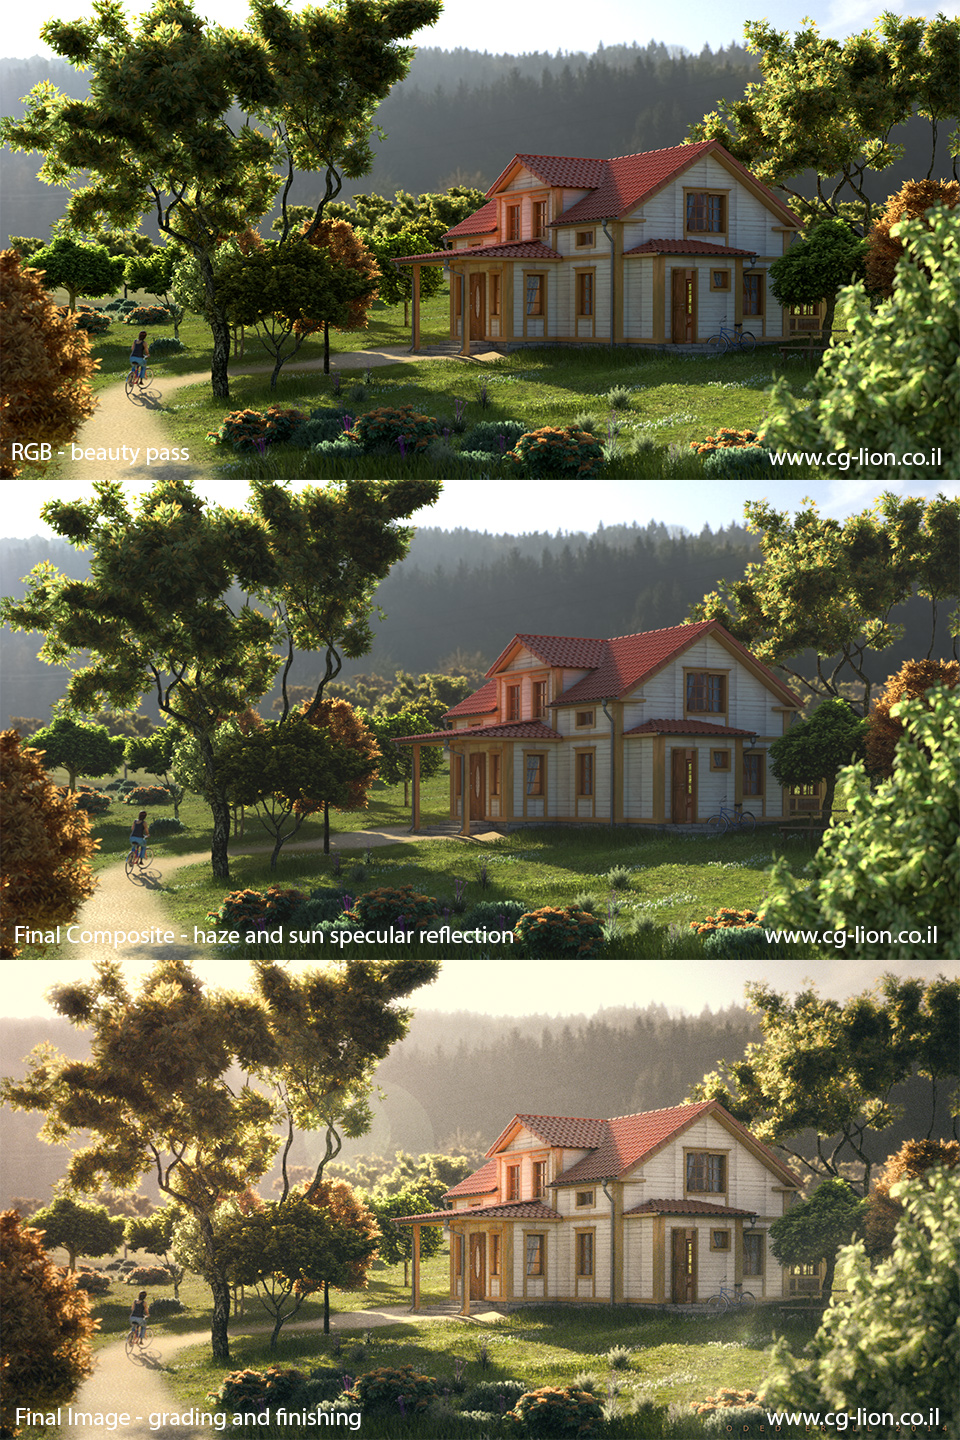 Post_production_stages